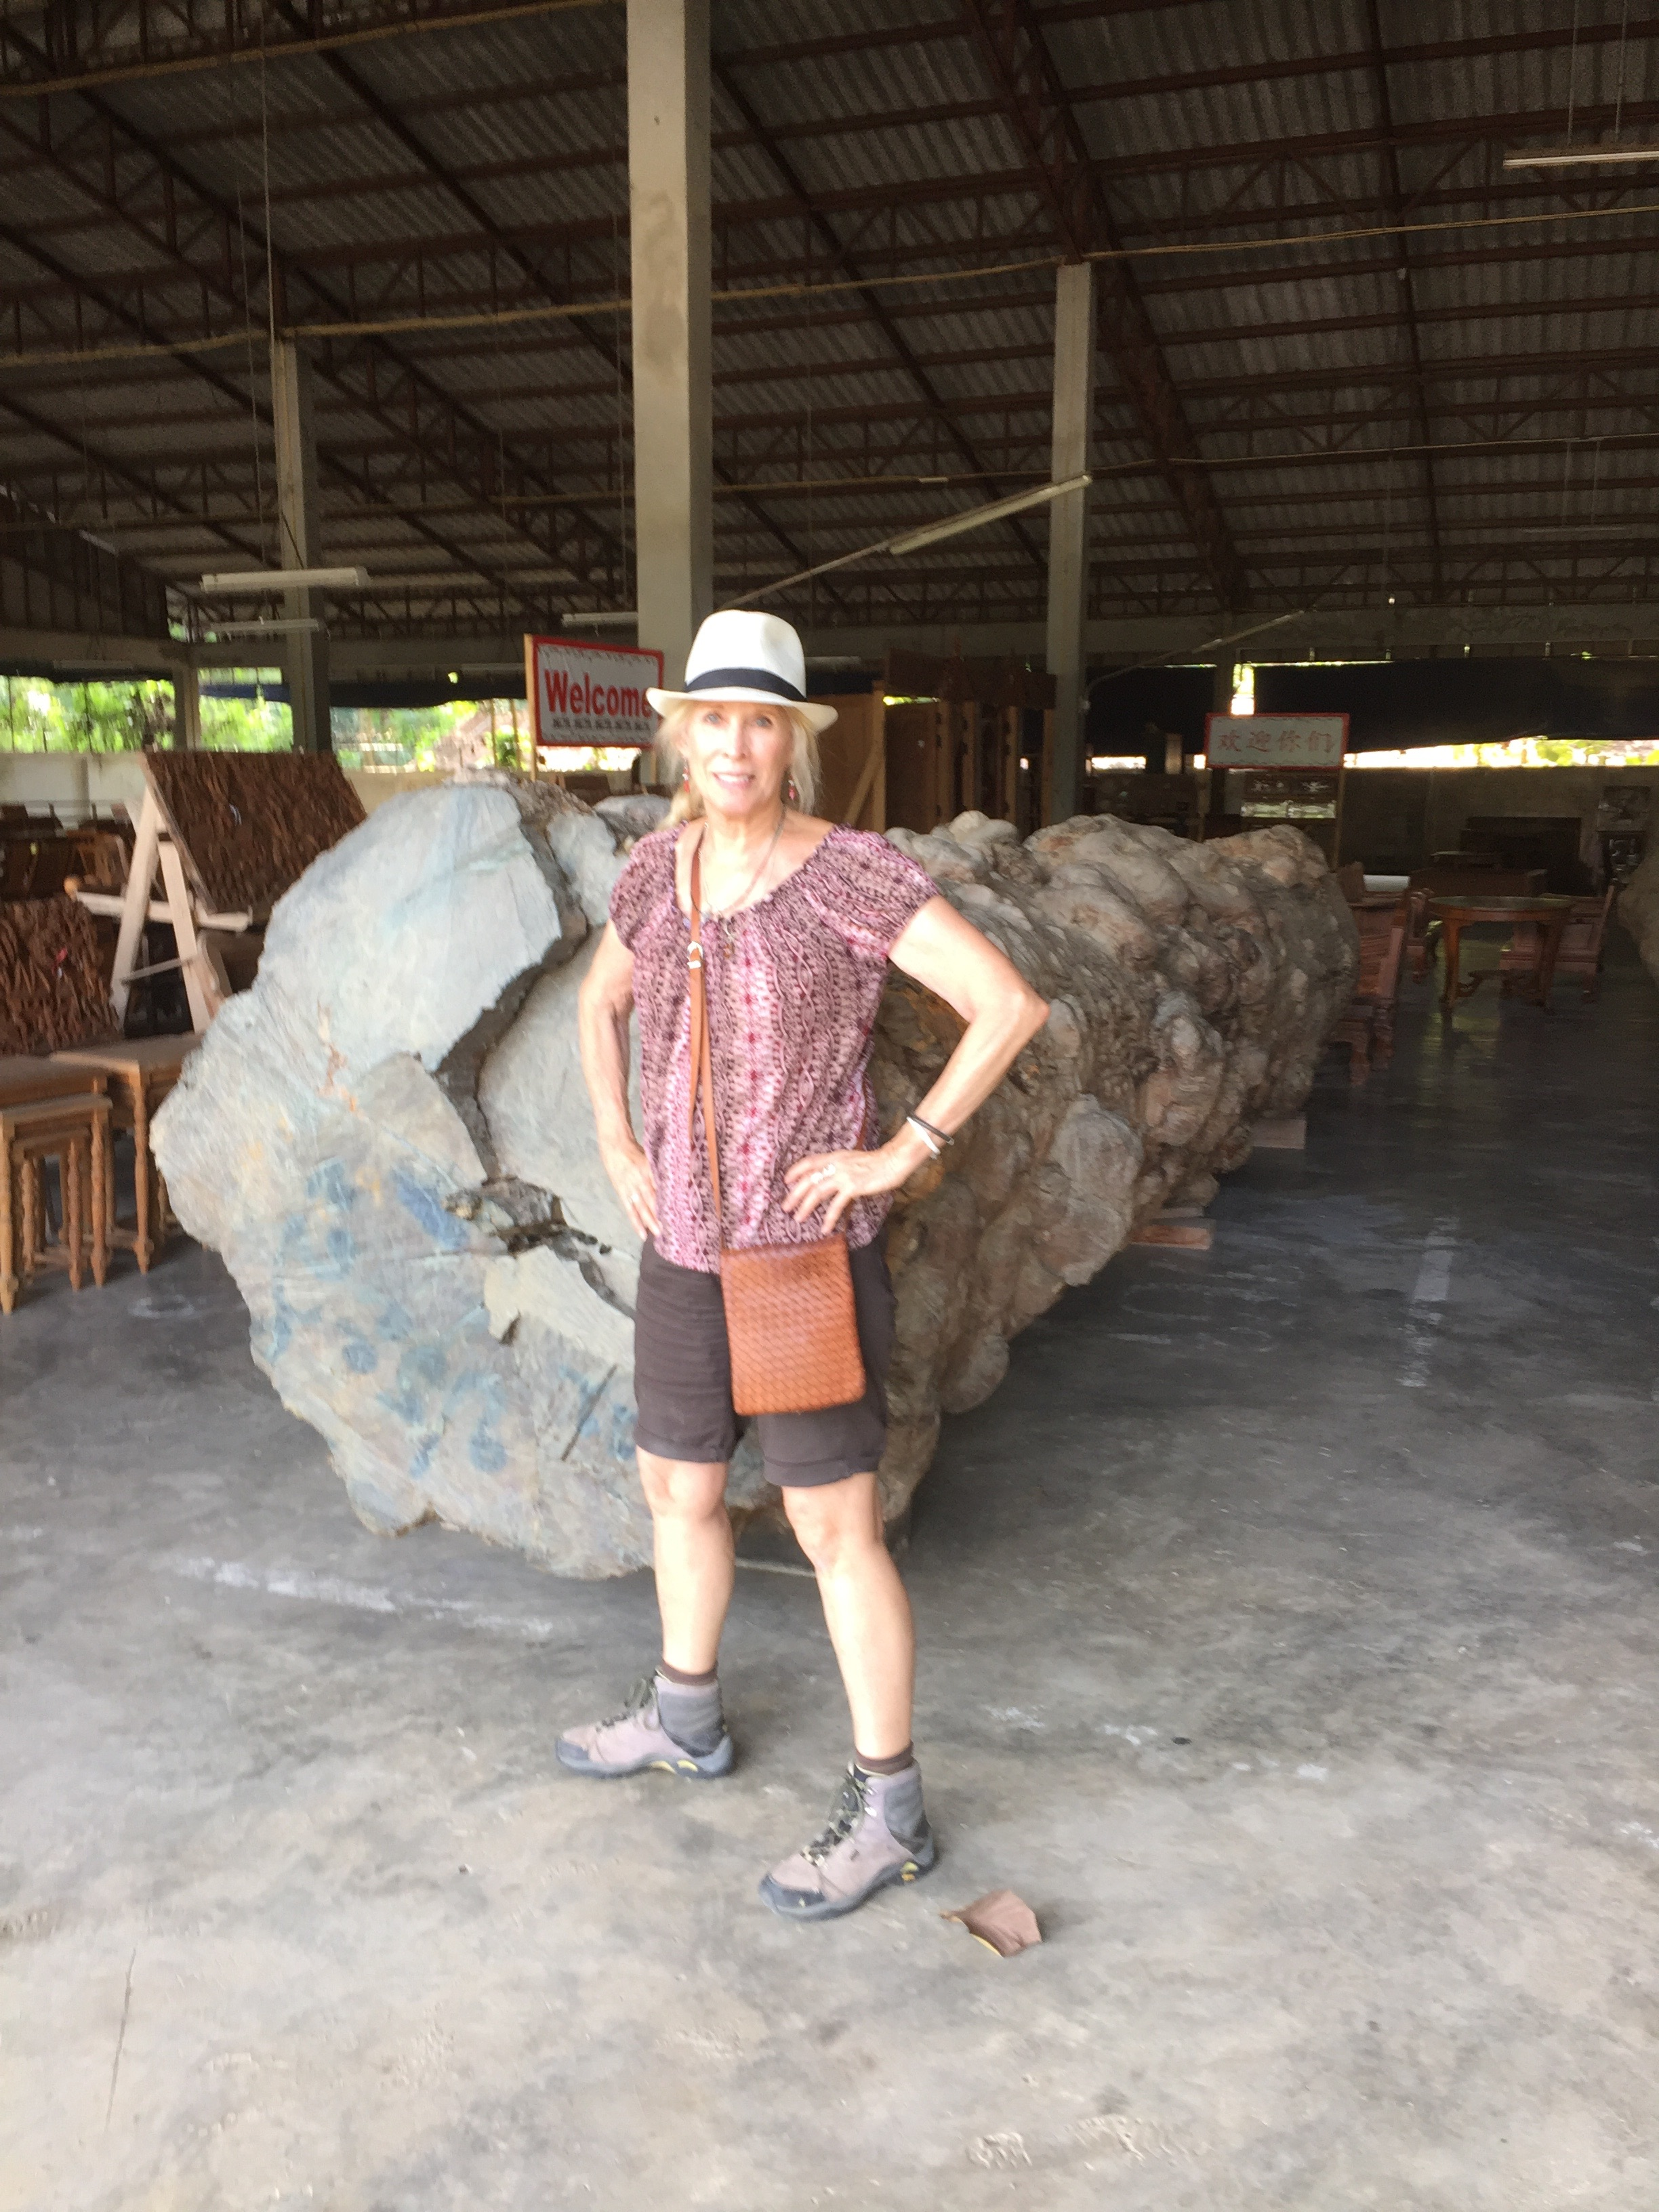 """Me next to an old growth teak tree on the floor of the teak furniture manufacturer's warehouse in Chang Mai. This will be used to make lawn furniture. Yet, the warehouse claims to make furniture only out of """"sustainably harvested"""" teak."""